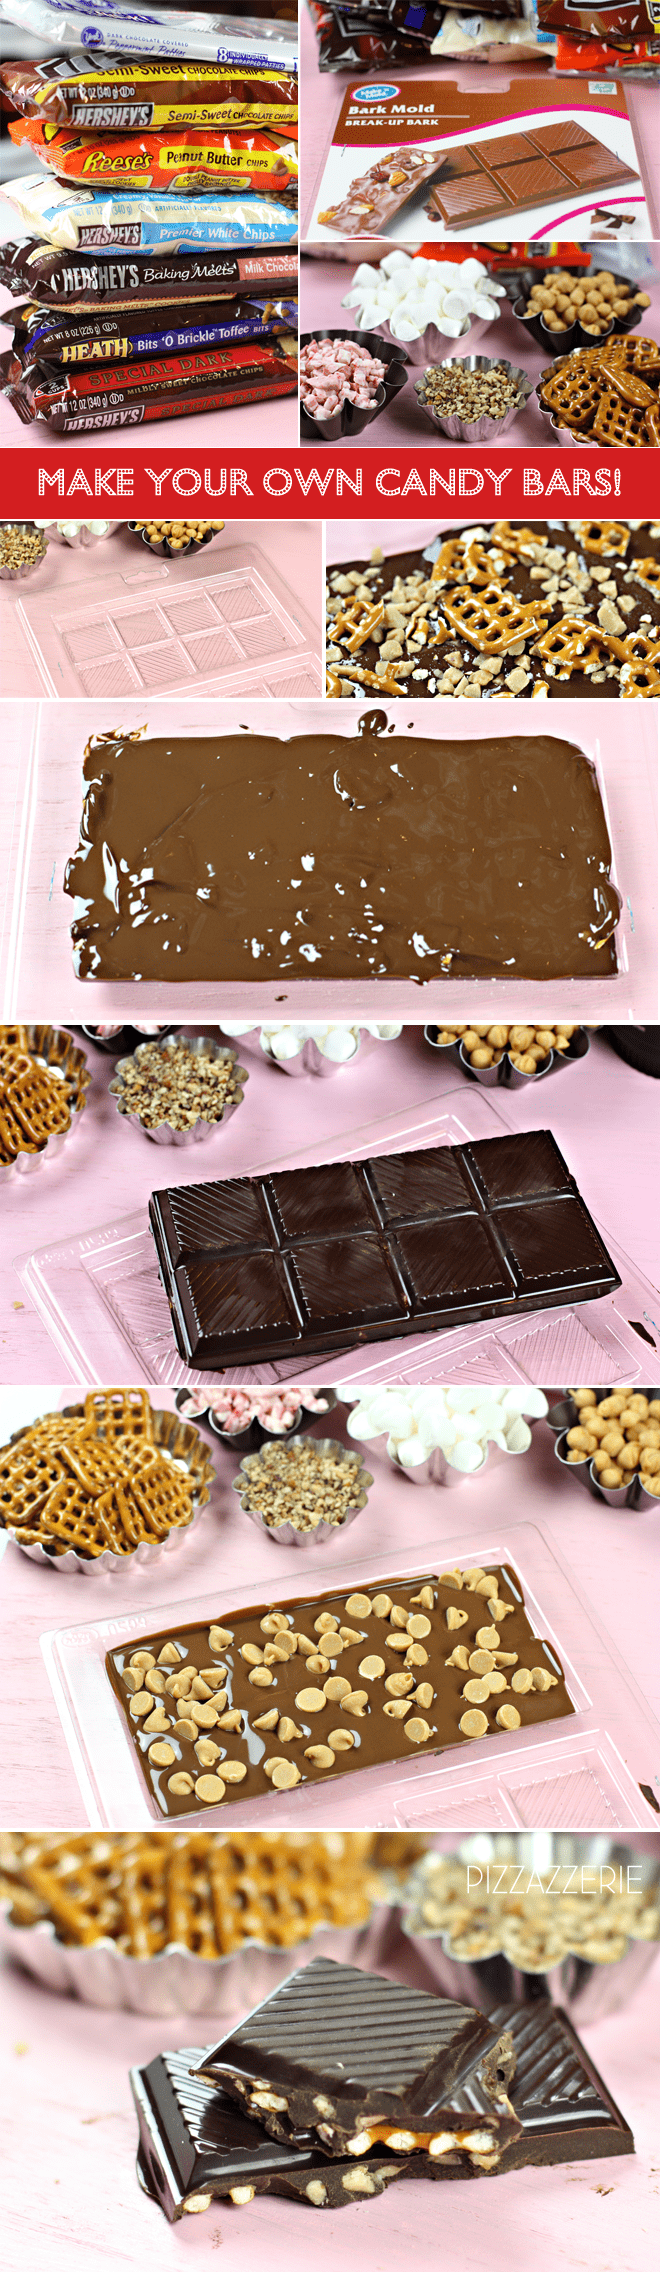 How to Make Your Own Candy Bar | Tutorial | Pizzazzerie.com